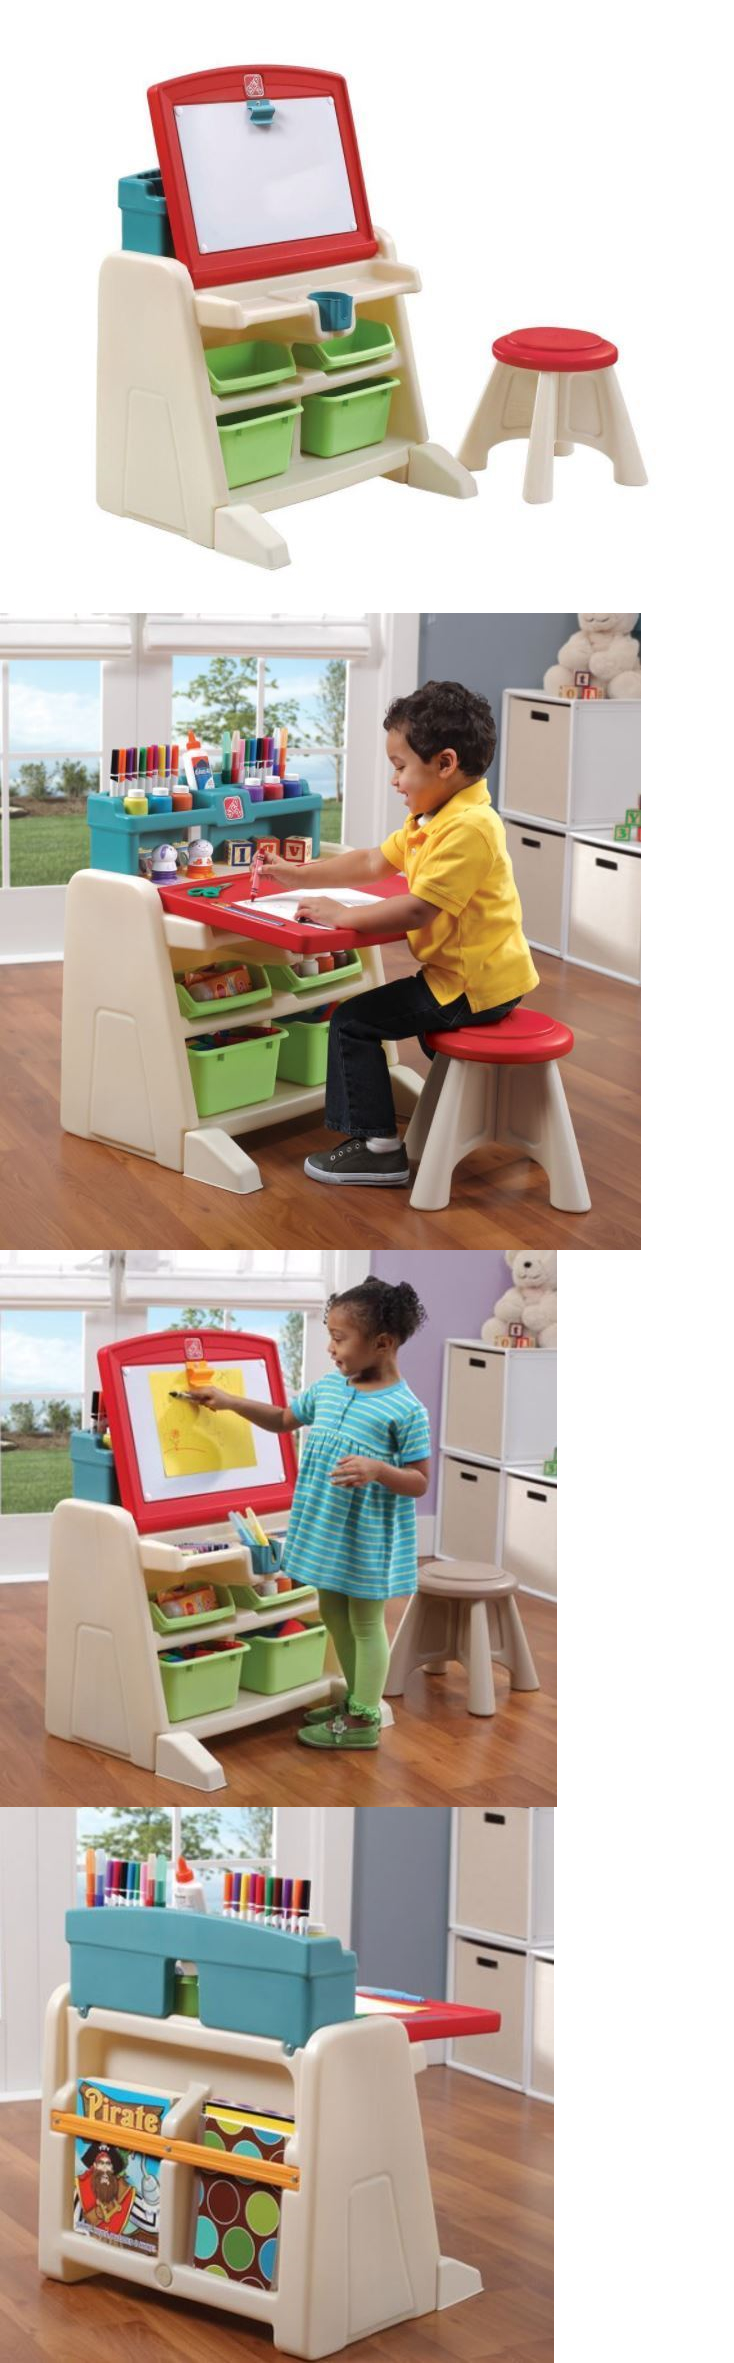 Step 2 52344: Step2 Flip And Doodle Easel Desk With Kids Stool Cupholder  Storage Bin